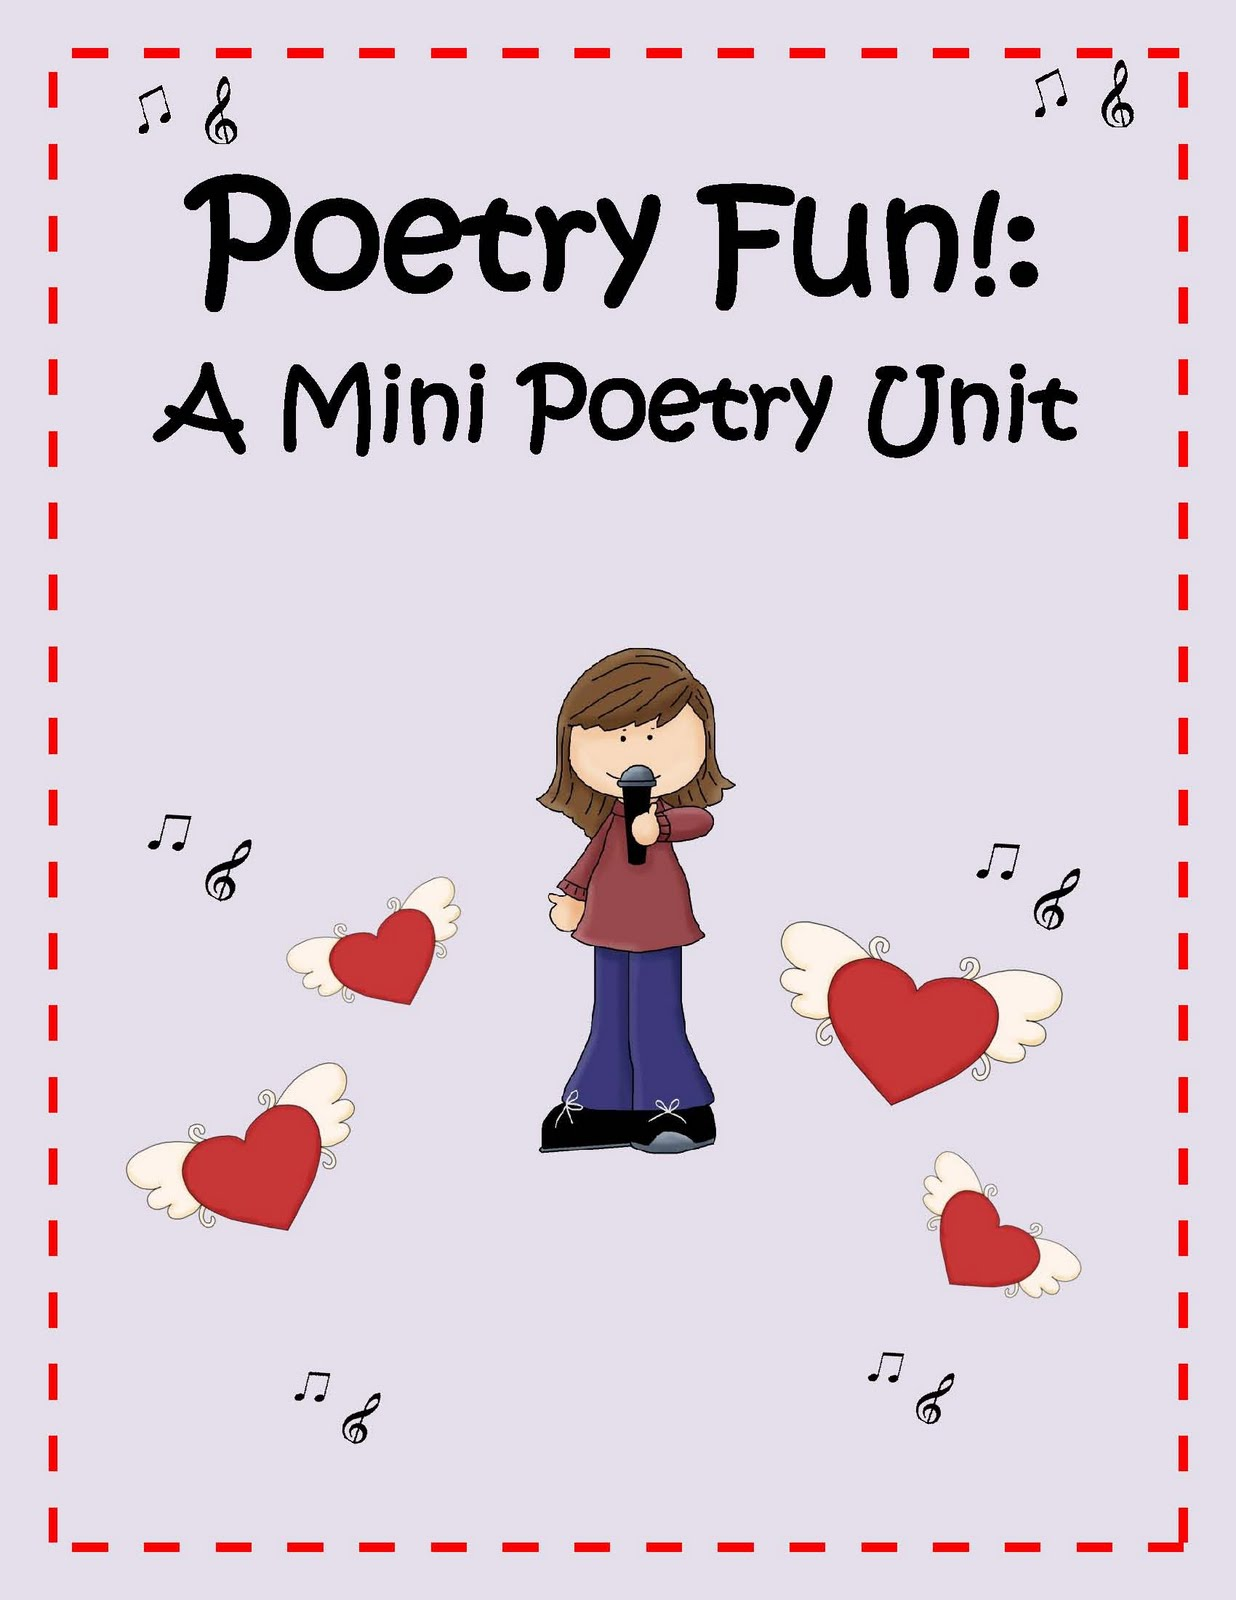 Made 4 Elementary And Made 4 Middle School Fun Poetry Unit